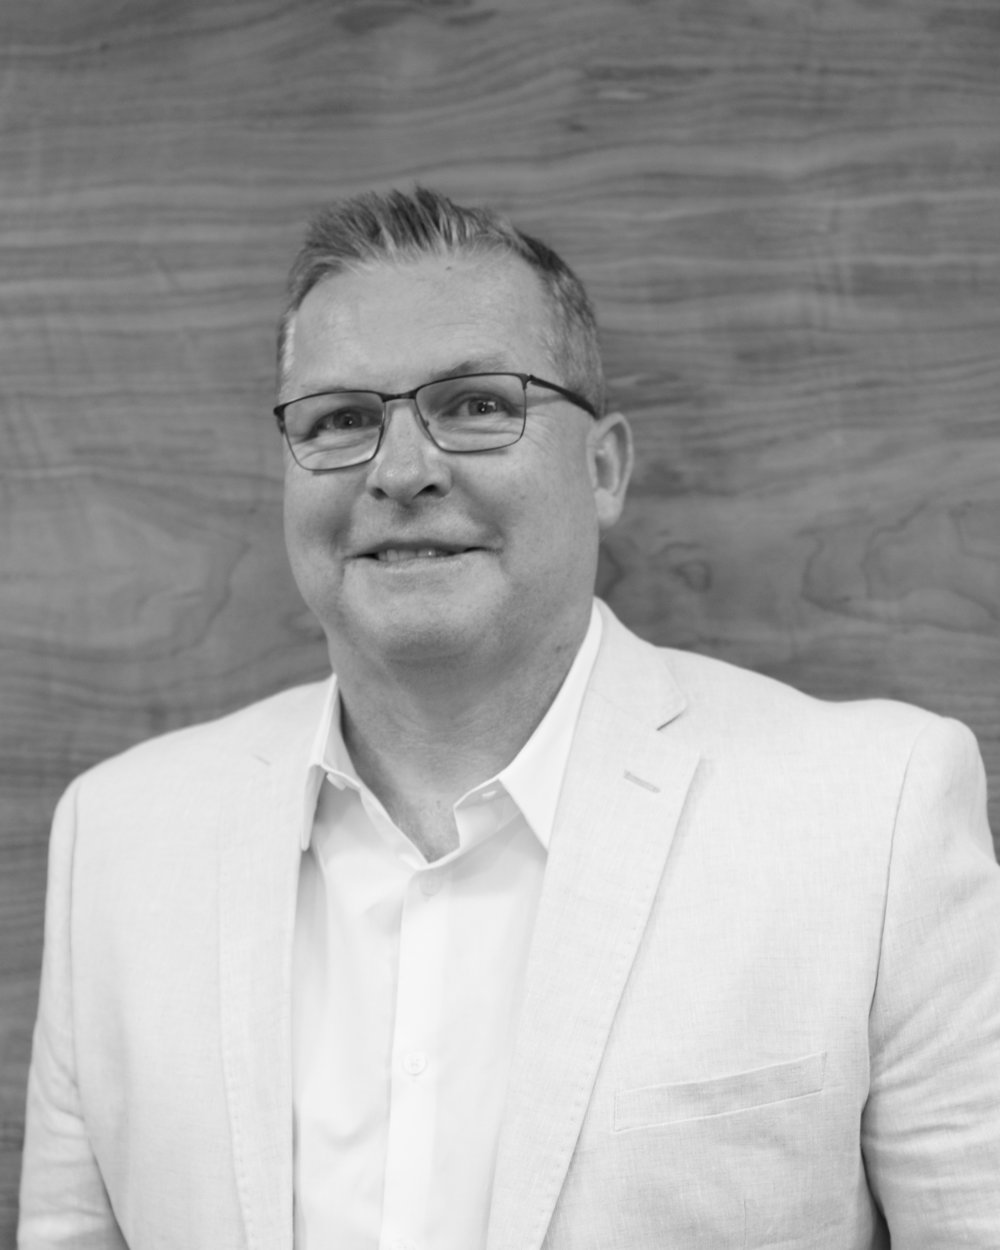 Gary Hadfield   Alumnus Nelson Mandela Metropolitan University, Gary Hadfield joined the team at Loot.co.za as CEO in January 2011 and has been instrumental in transforming loot into a leading online general merchandise retailer.    Read more  ...